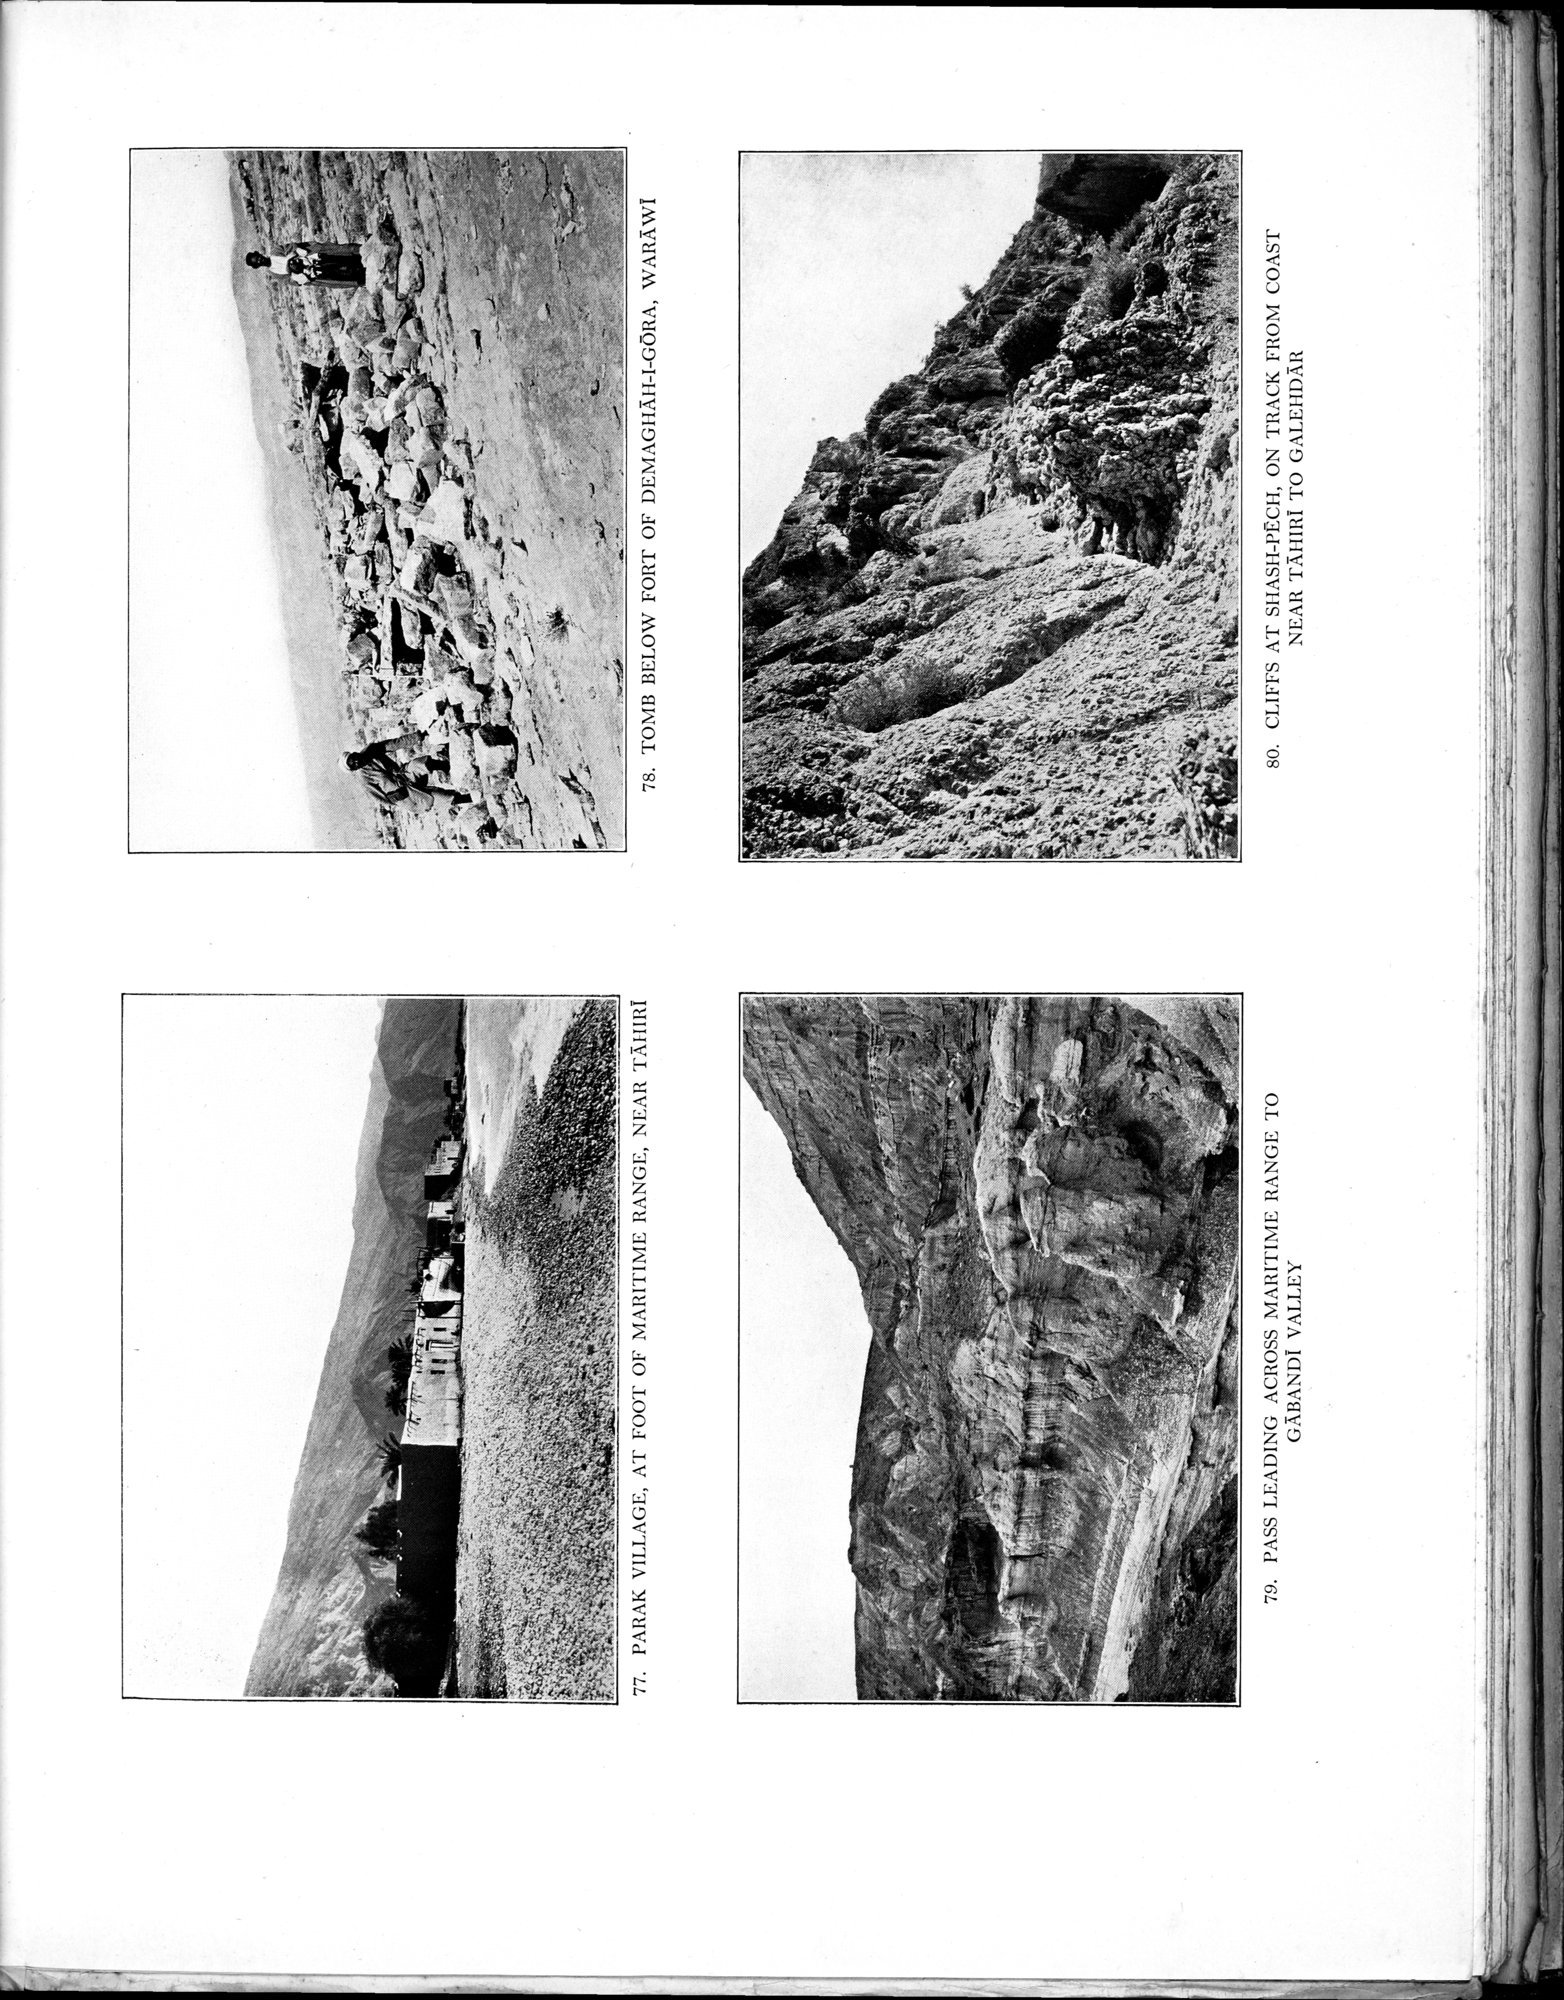 Archaeological Reconnaissances in North-Western India and South-Eastern Īrān : vol.1 / Page 295 (Grayscale High Resolution Image)